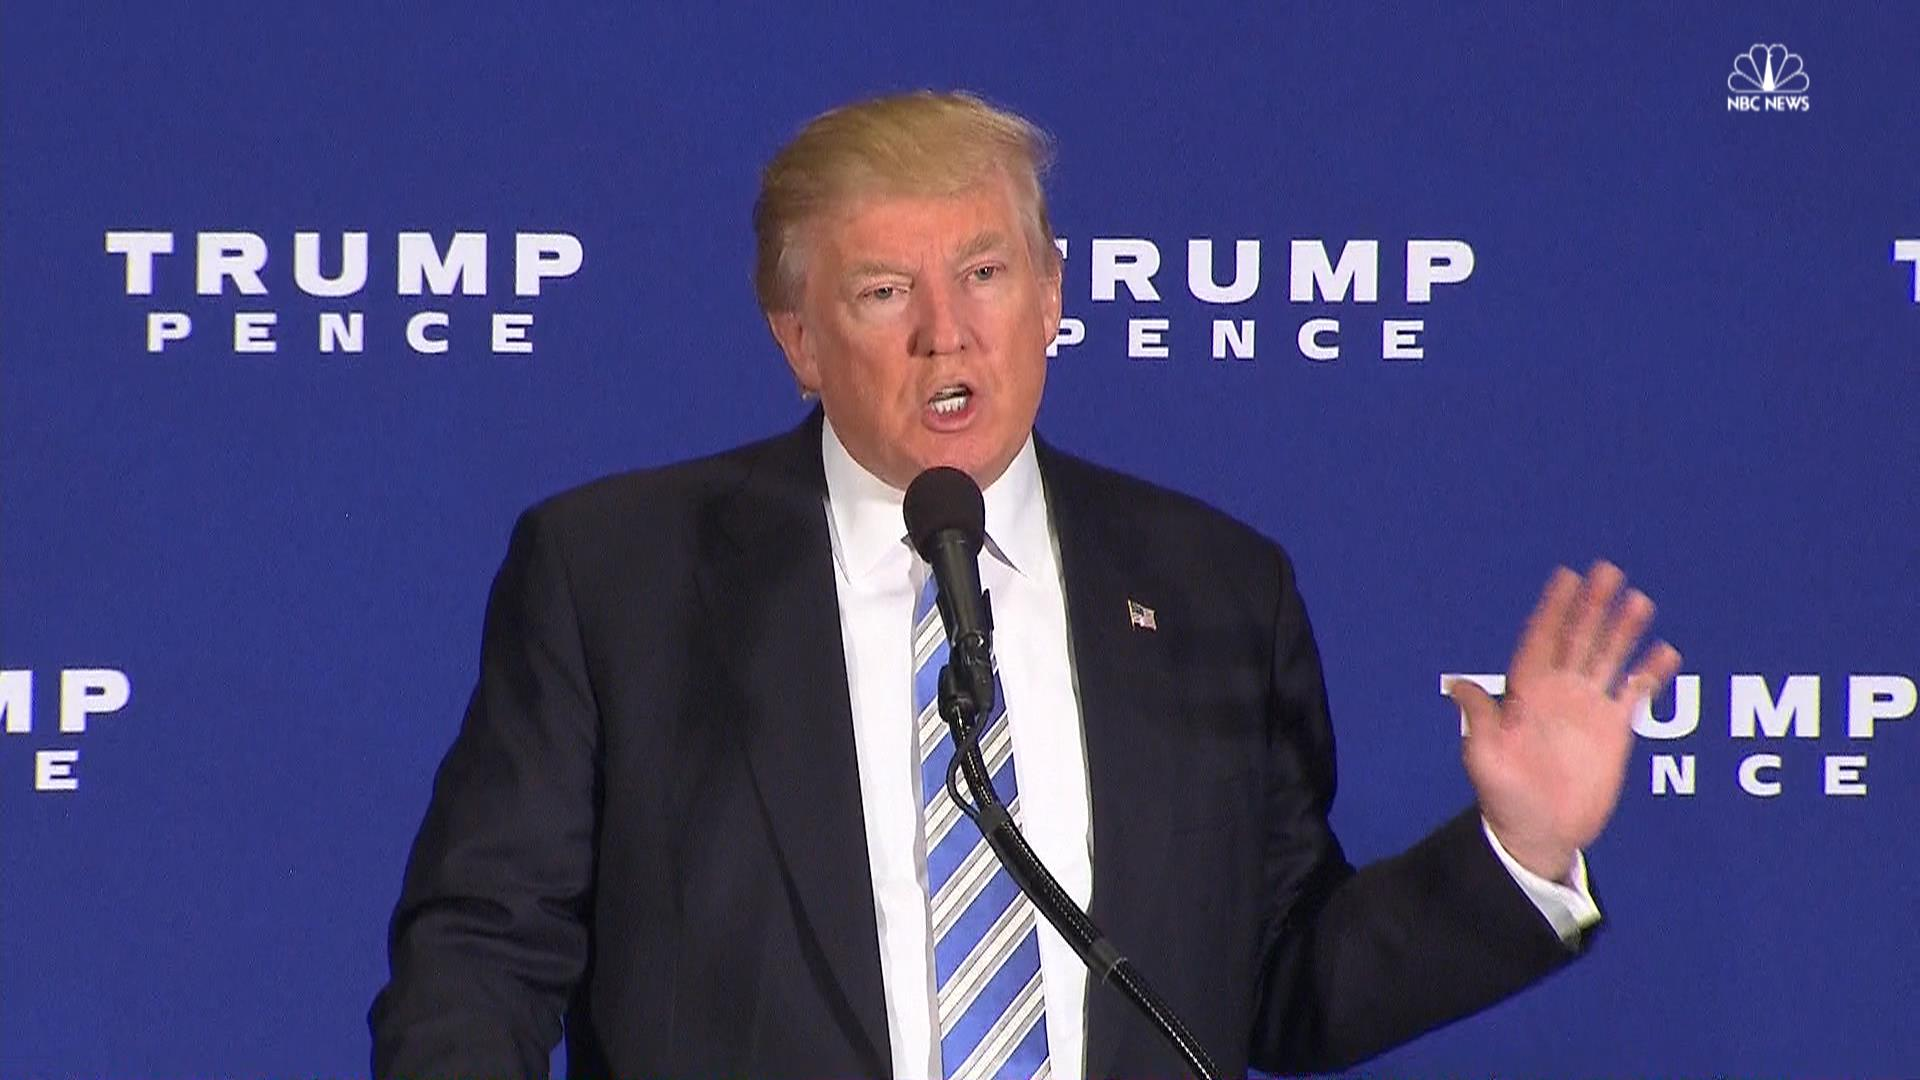 Trump Threatens to Sue Accusers, Lays Out Plan for First 100 Days in Policy Speech